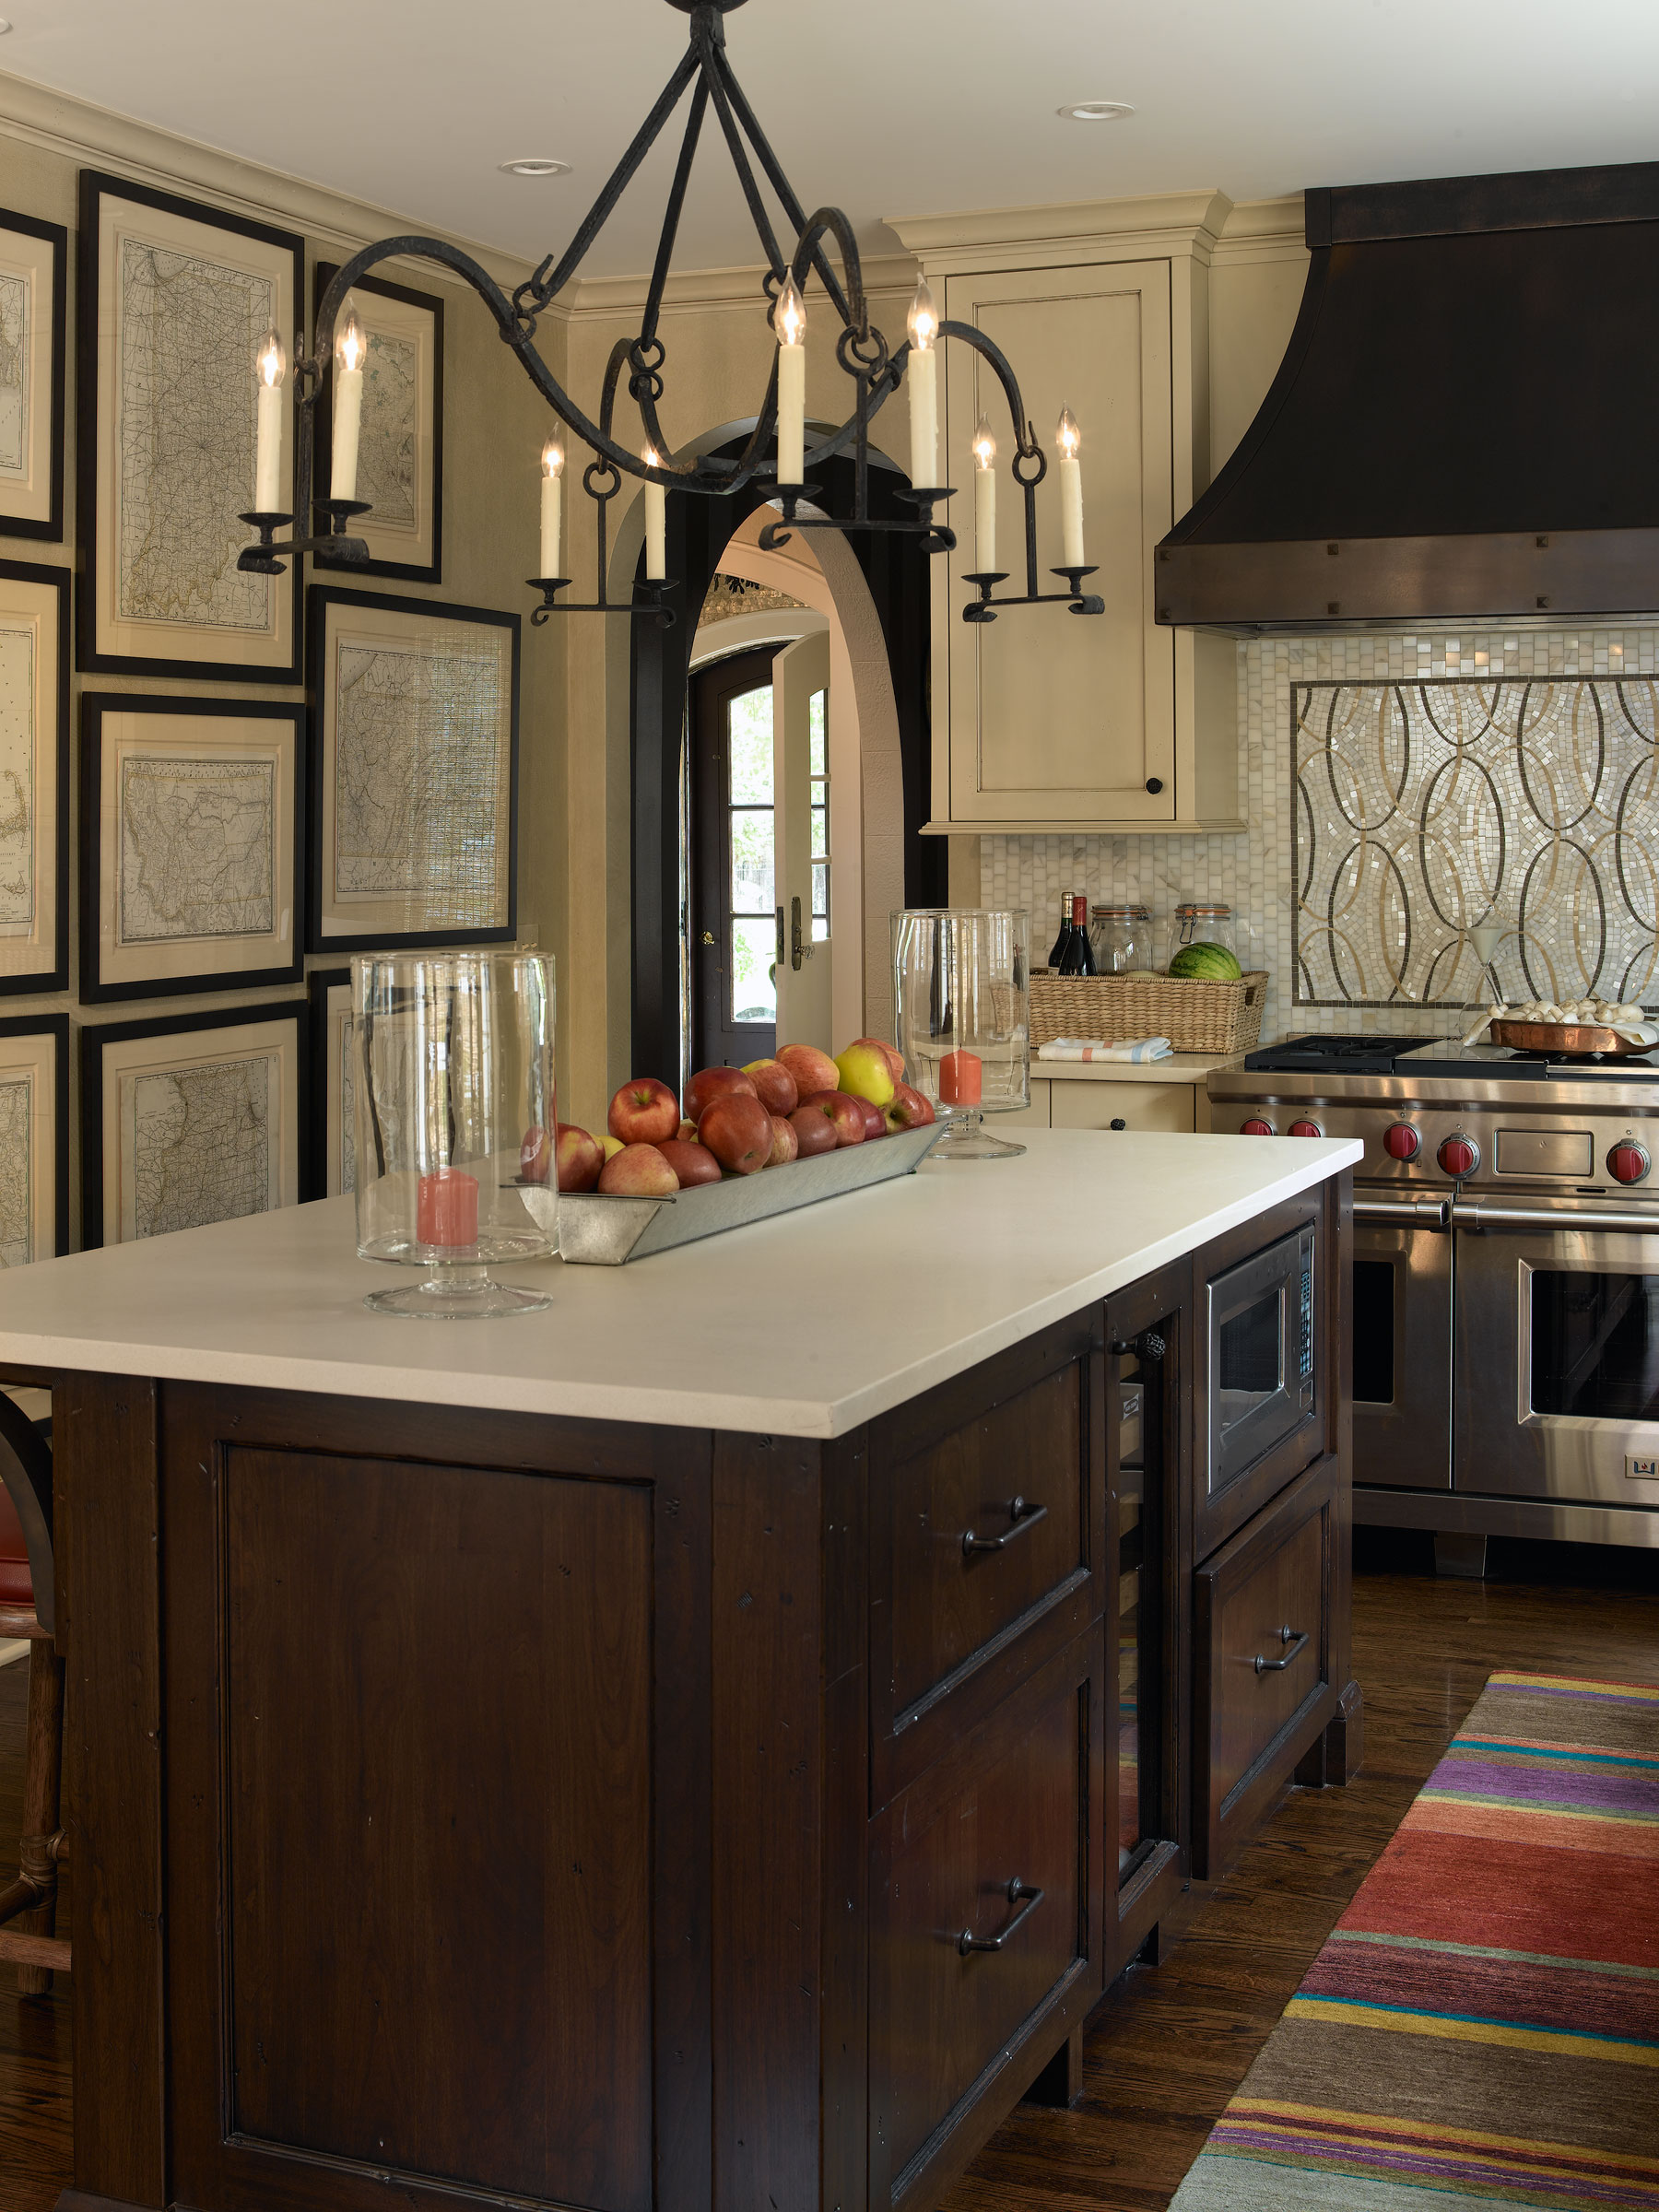 Tudor Interior Design lucy interior design | interior designers | minneapolis, st. paul